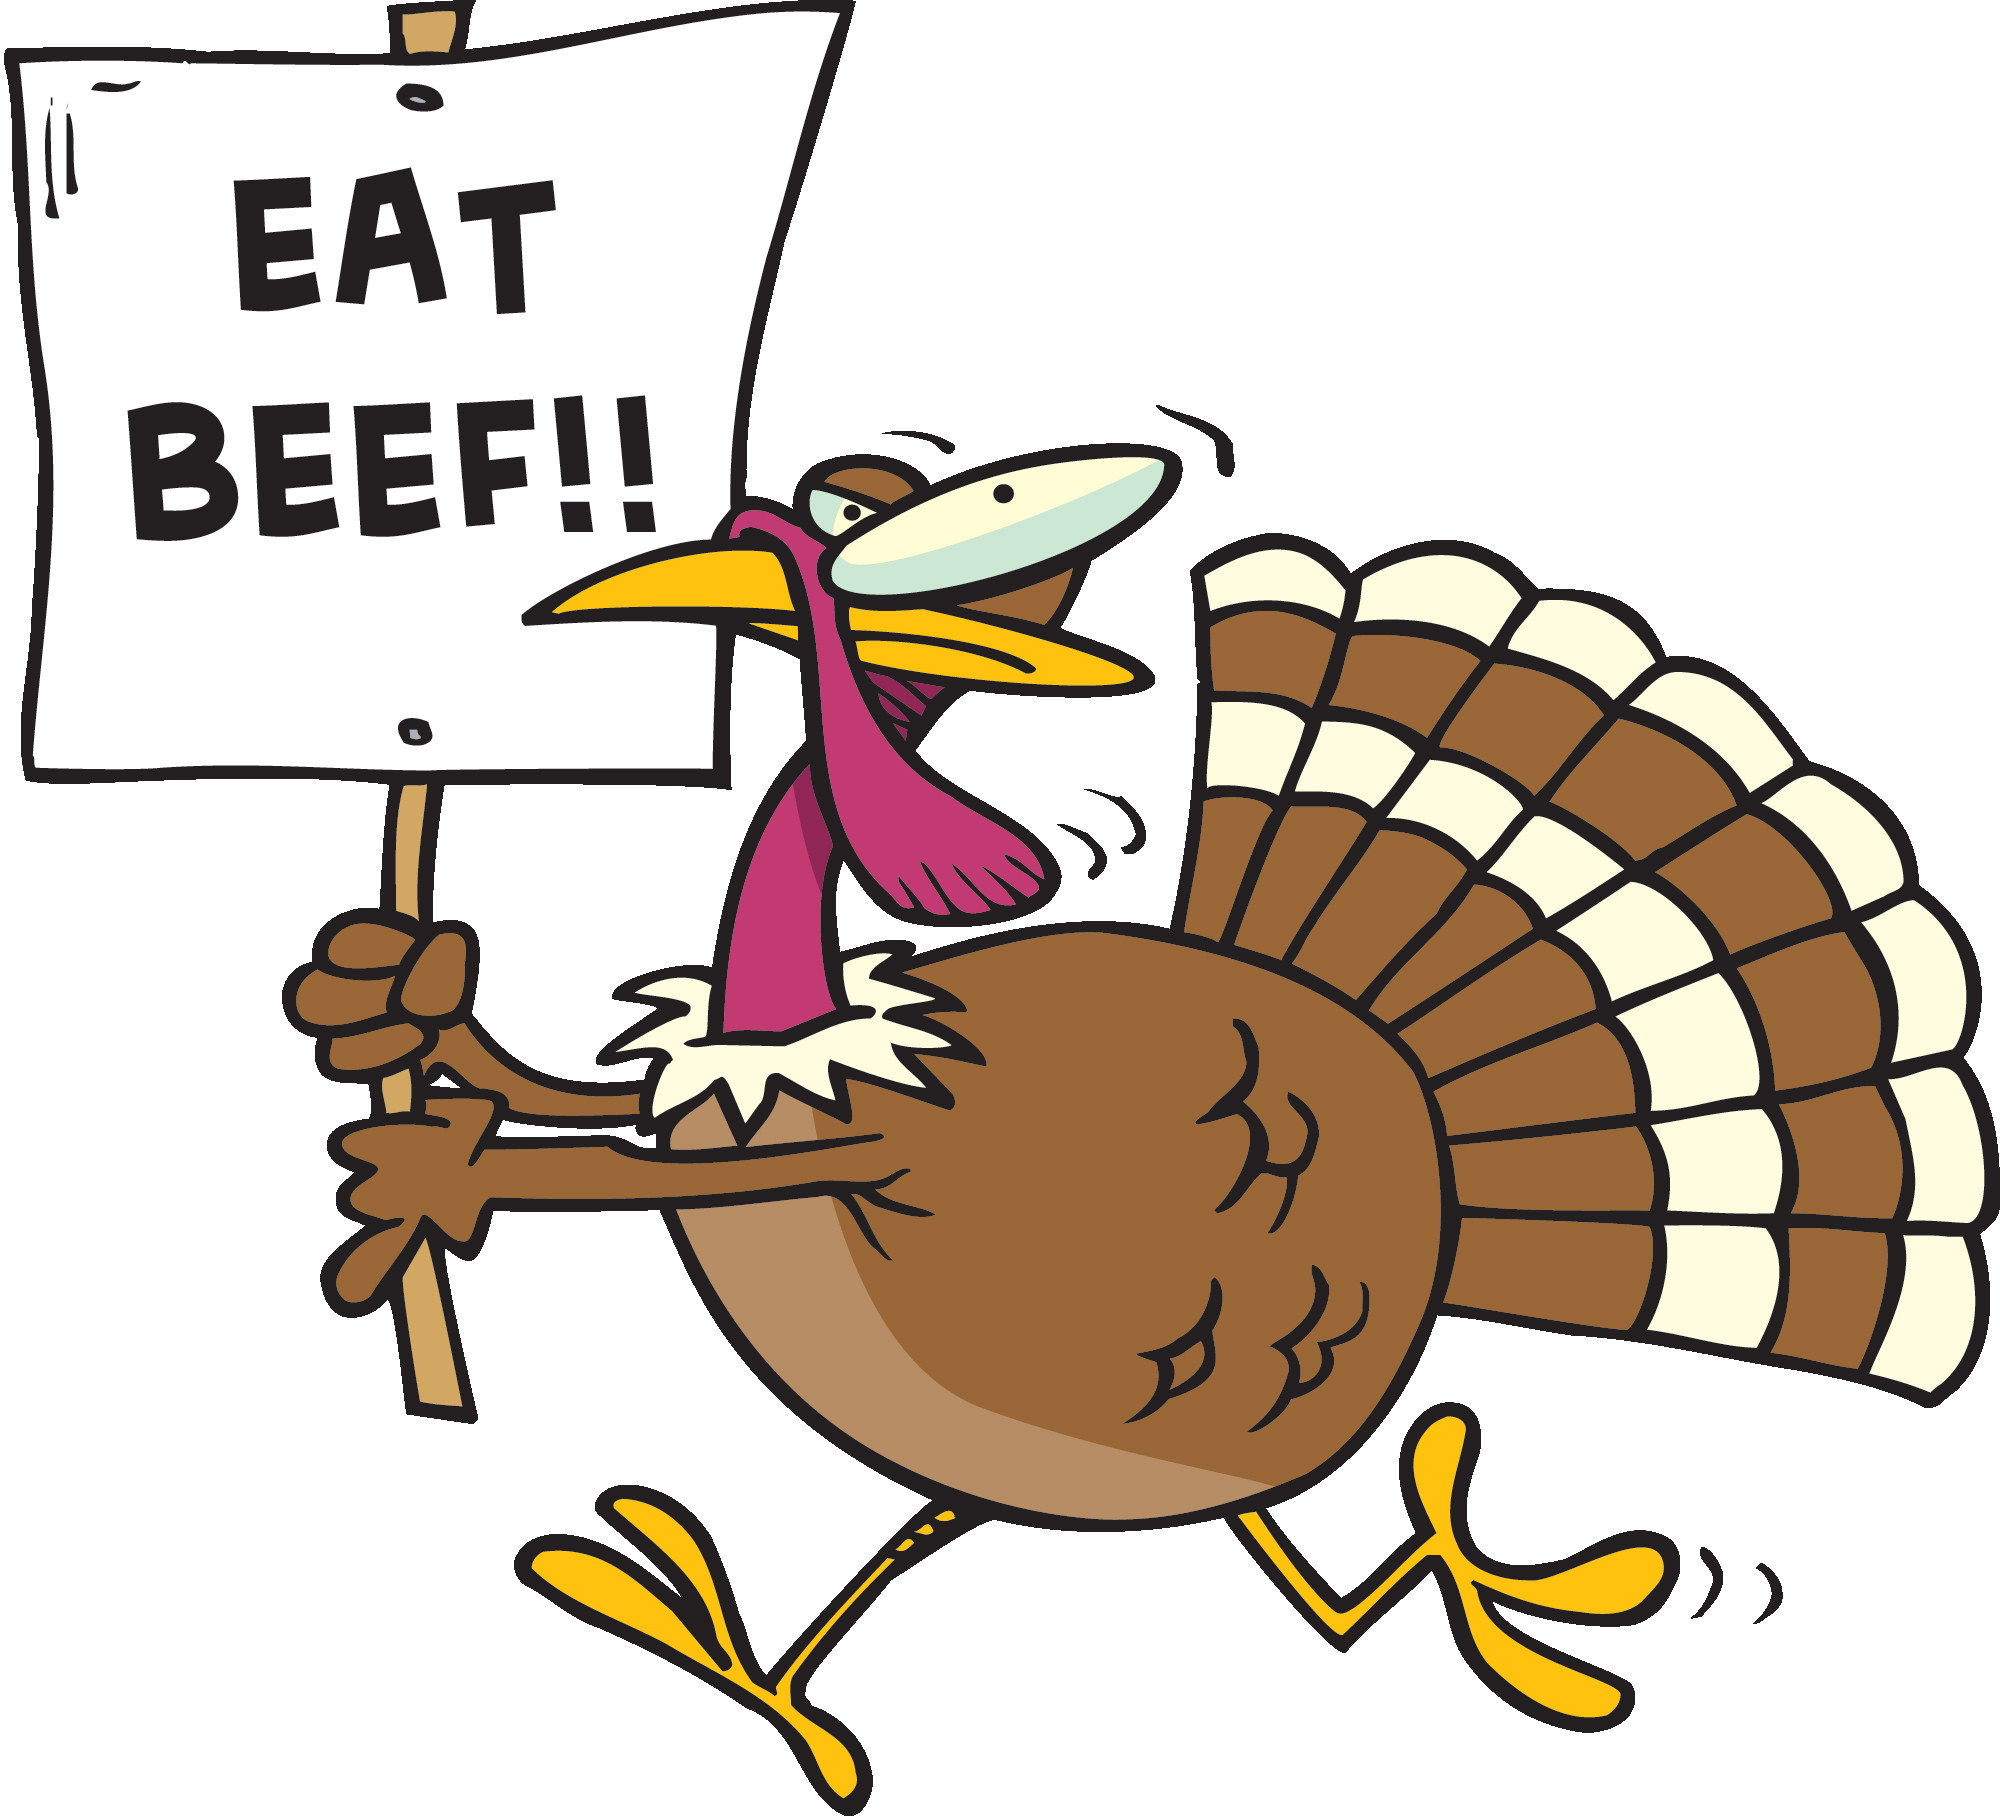 Thanksgiving Turkey Pictures Clip Art  Eat Beef Funny Turkey Clipart Image